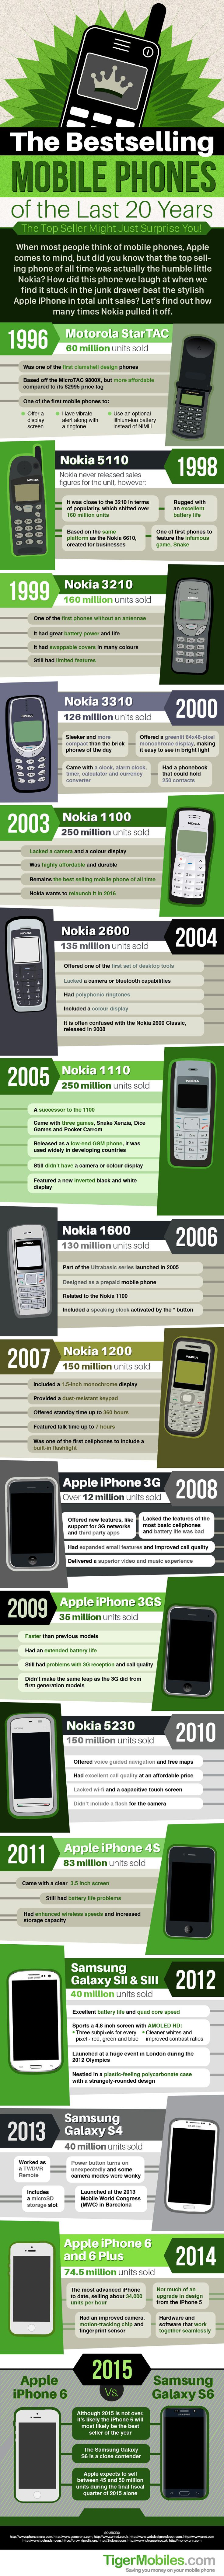 The Bestselling Mobile Phones of the Last 20 Years #Infographic #History #MobileDevices